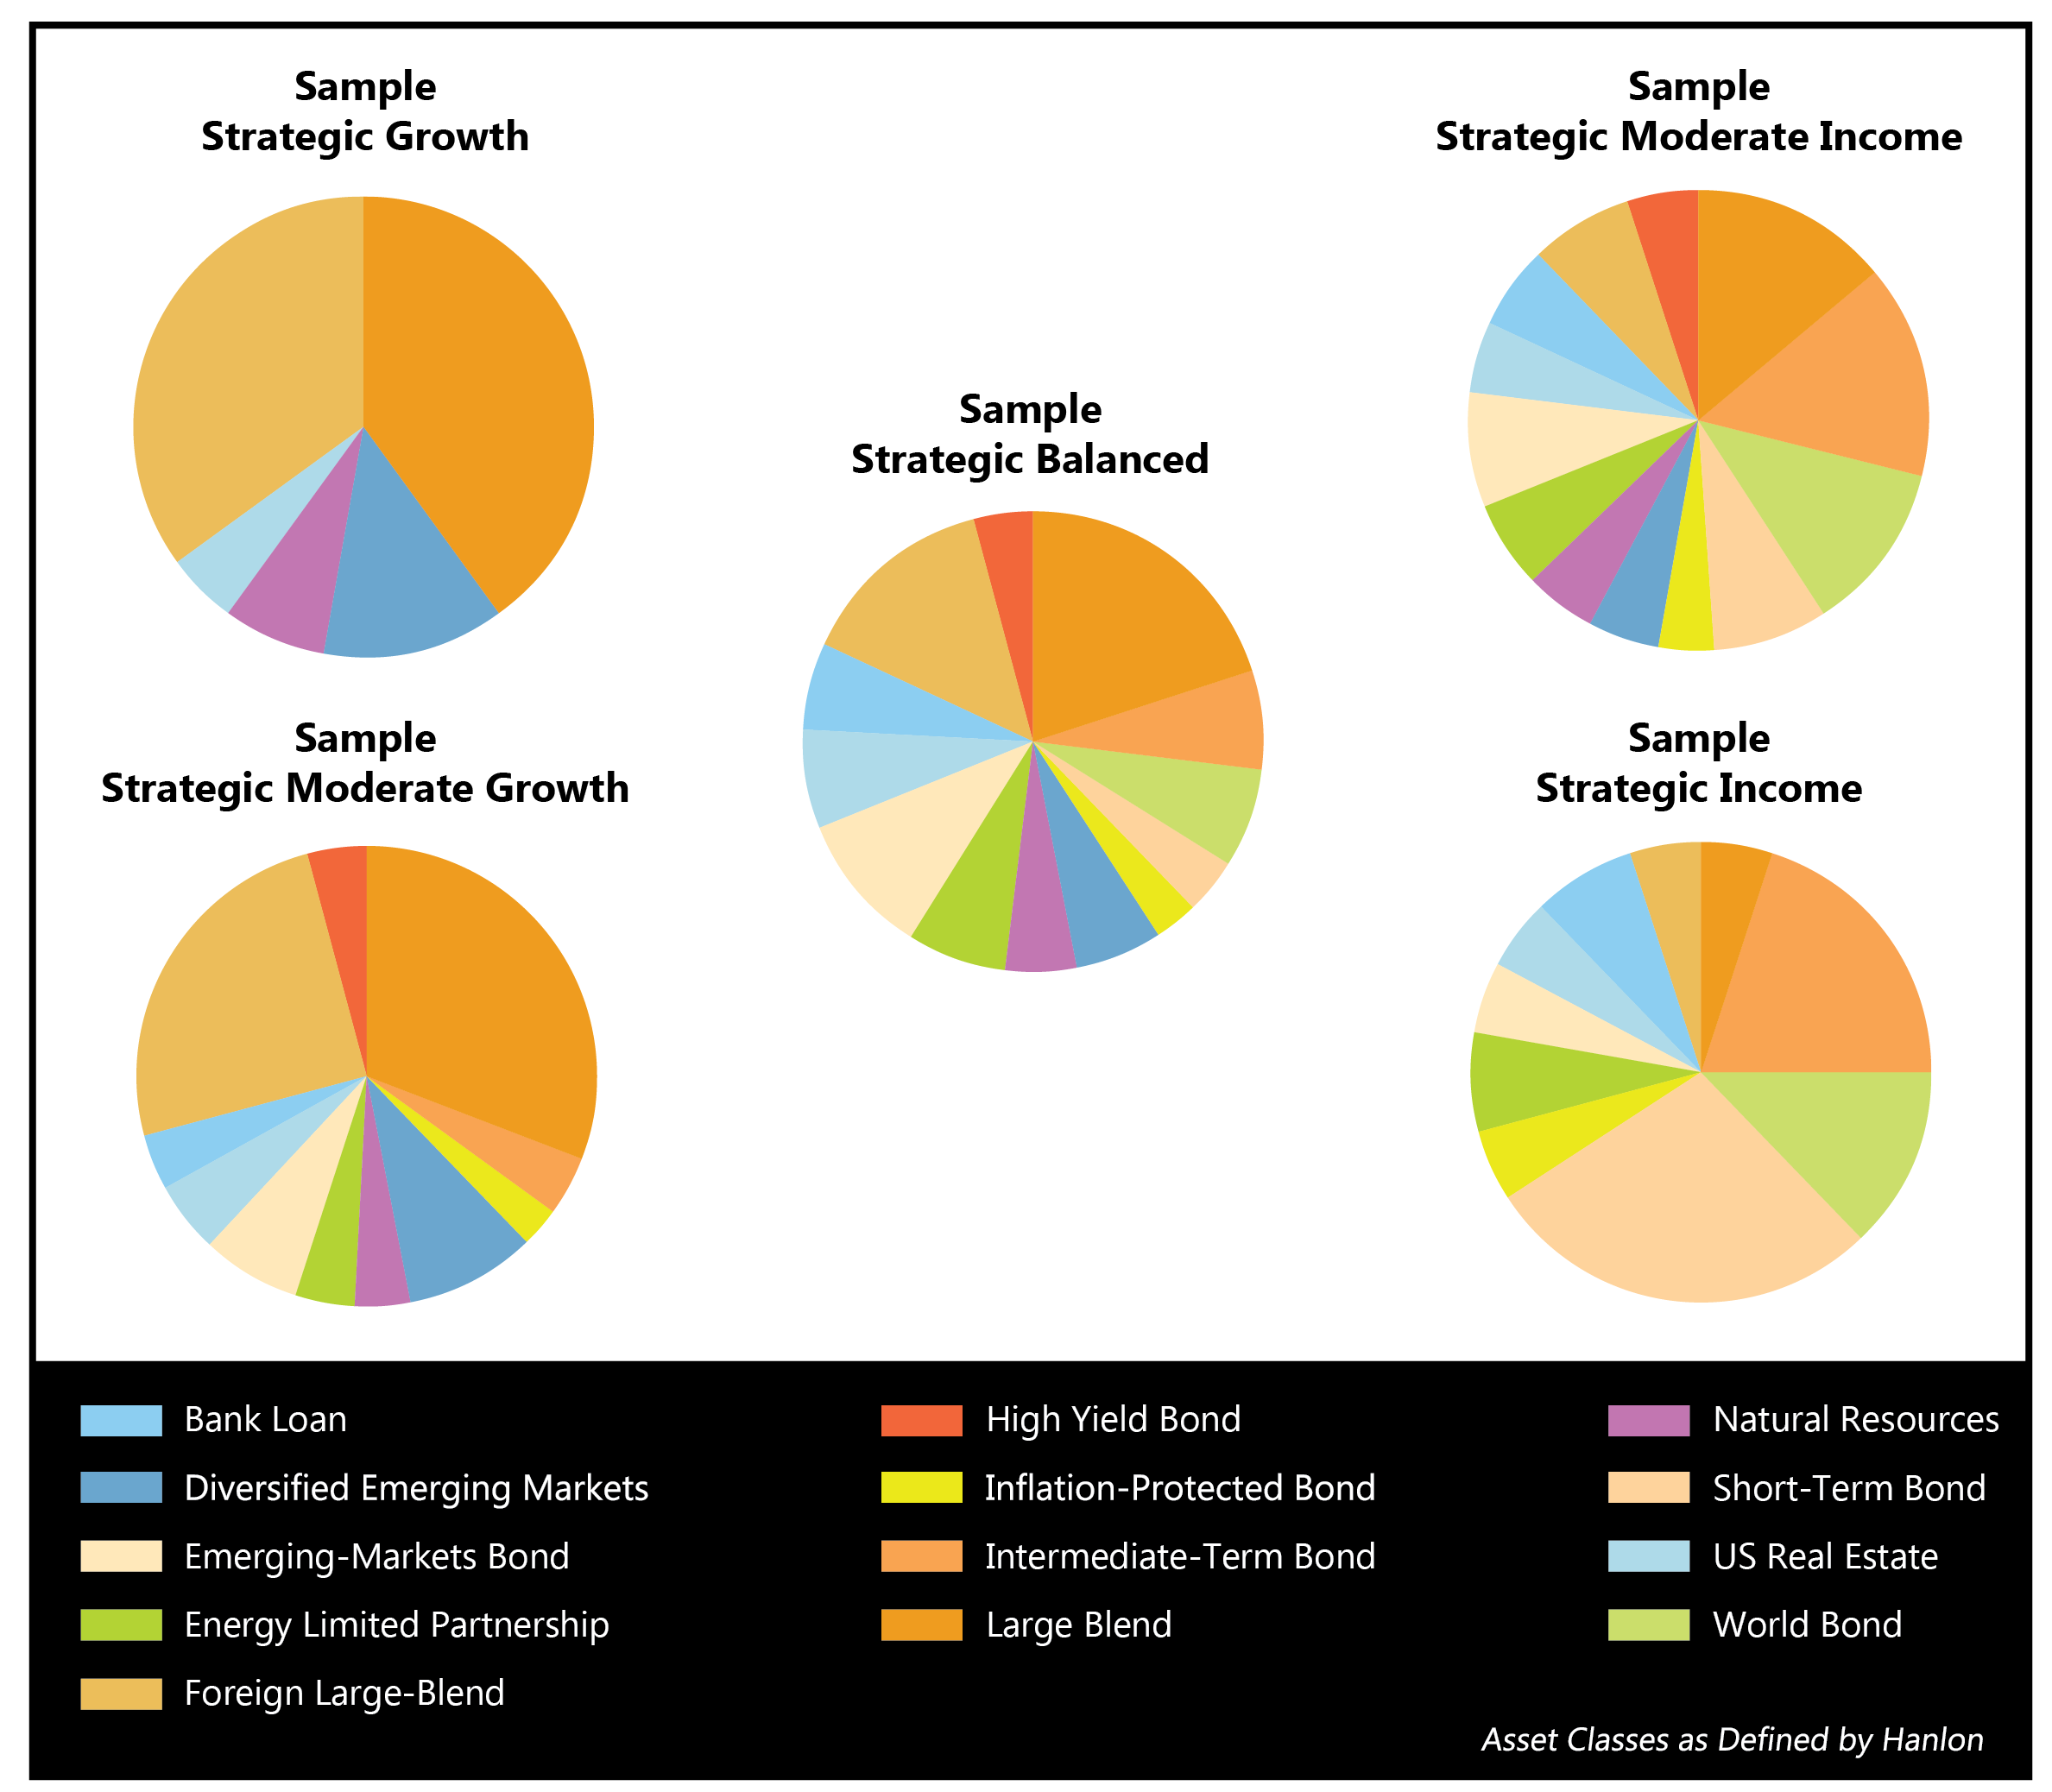 Sample Strategic Model Pie Charts